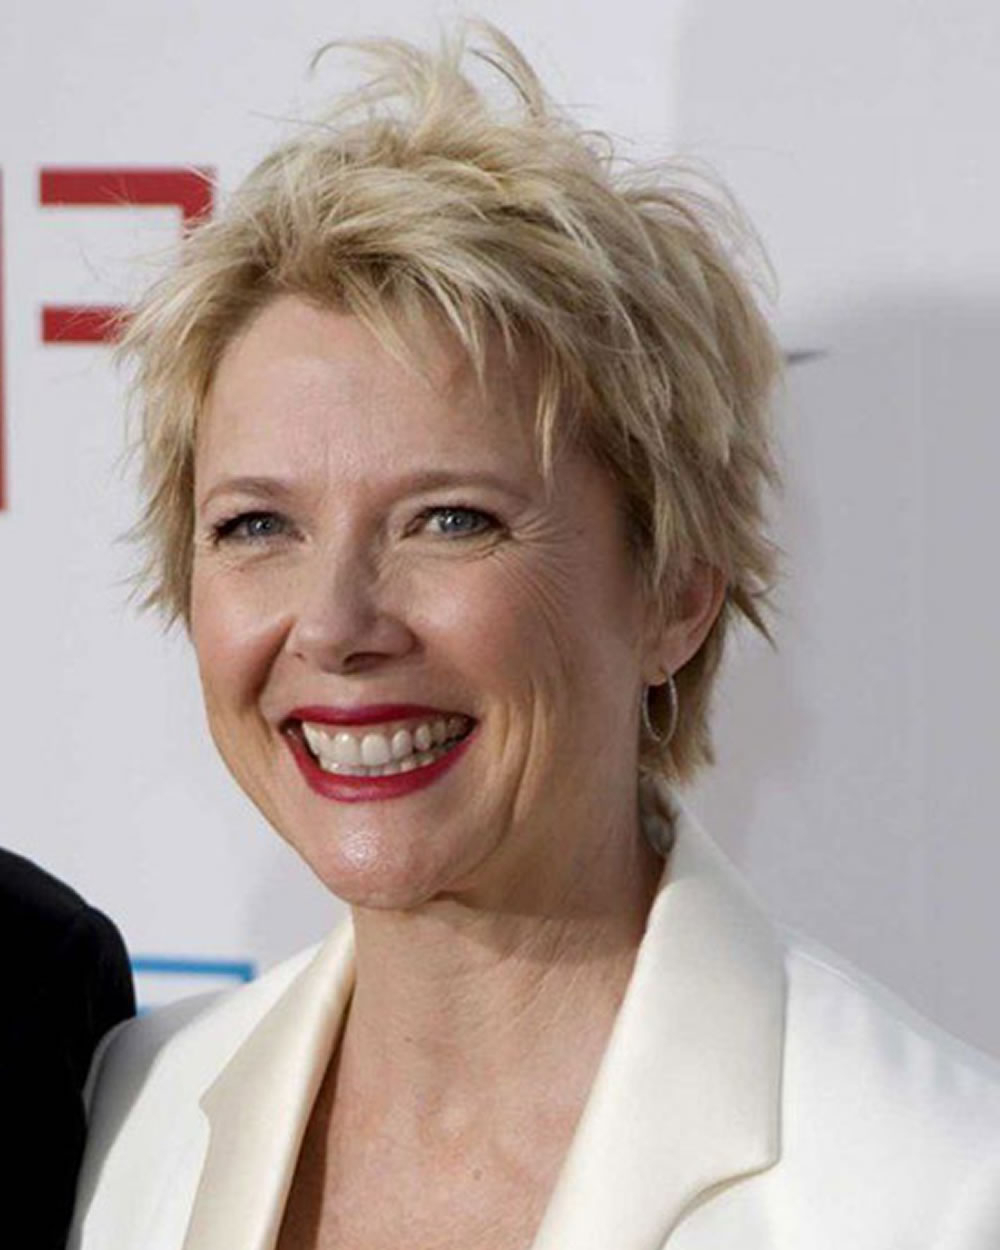 Pixie Short Haircuts For Older Women Over 50 & 2018 2019 Short In Chic Blonde Pixie Bob Hairstyles For Women Over (View 18 of 20)